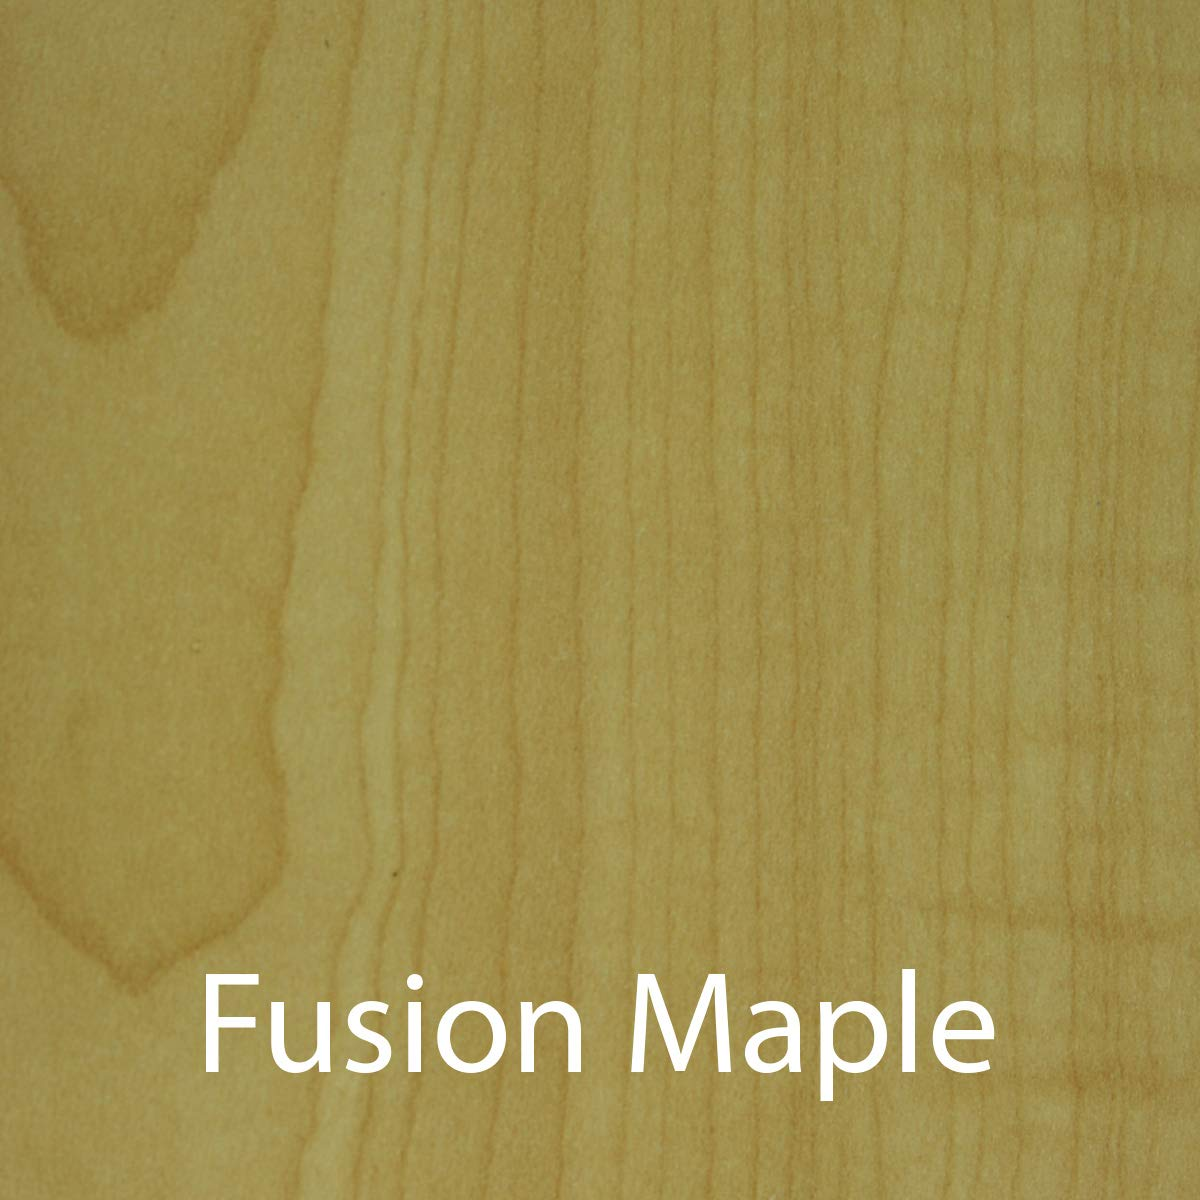 Correll Trapezoid Top Activity Table, 24''x48'', Fusion Maple by Correll